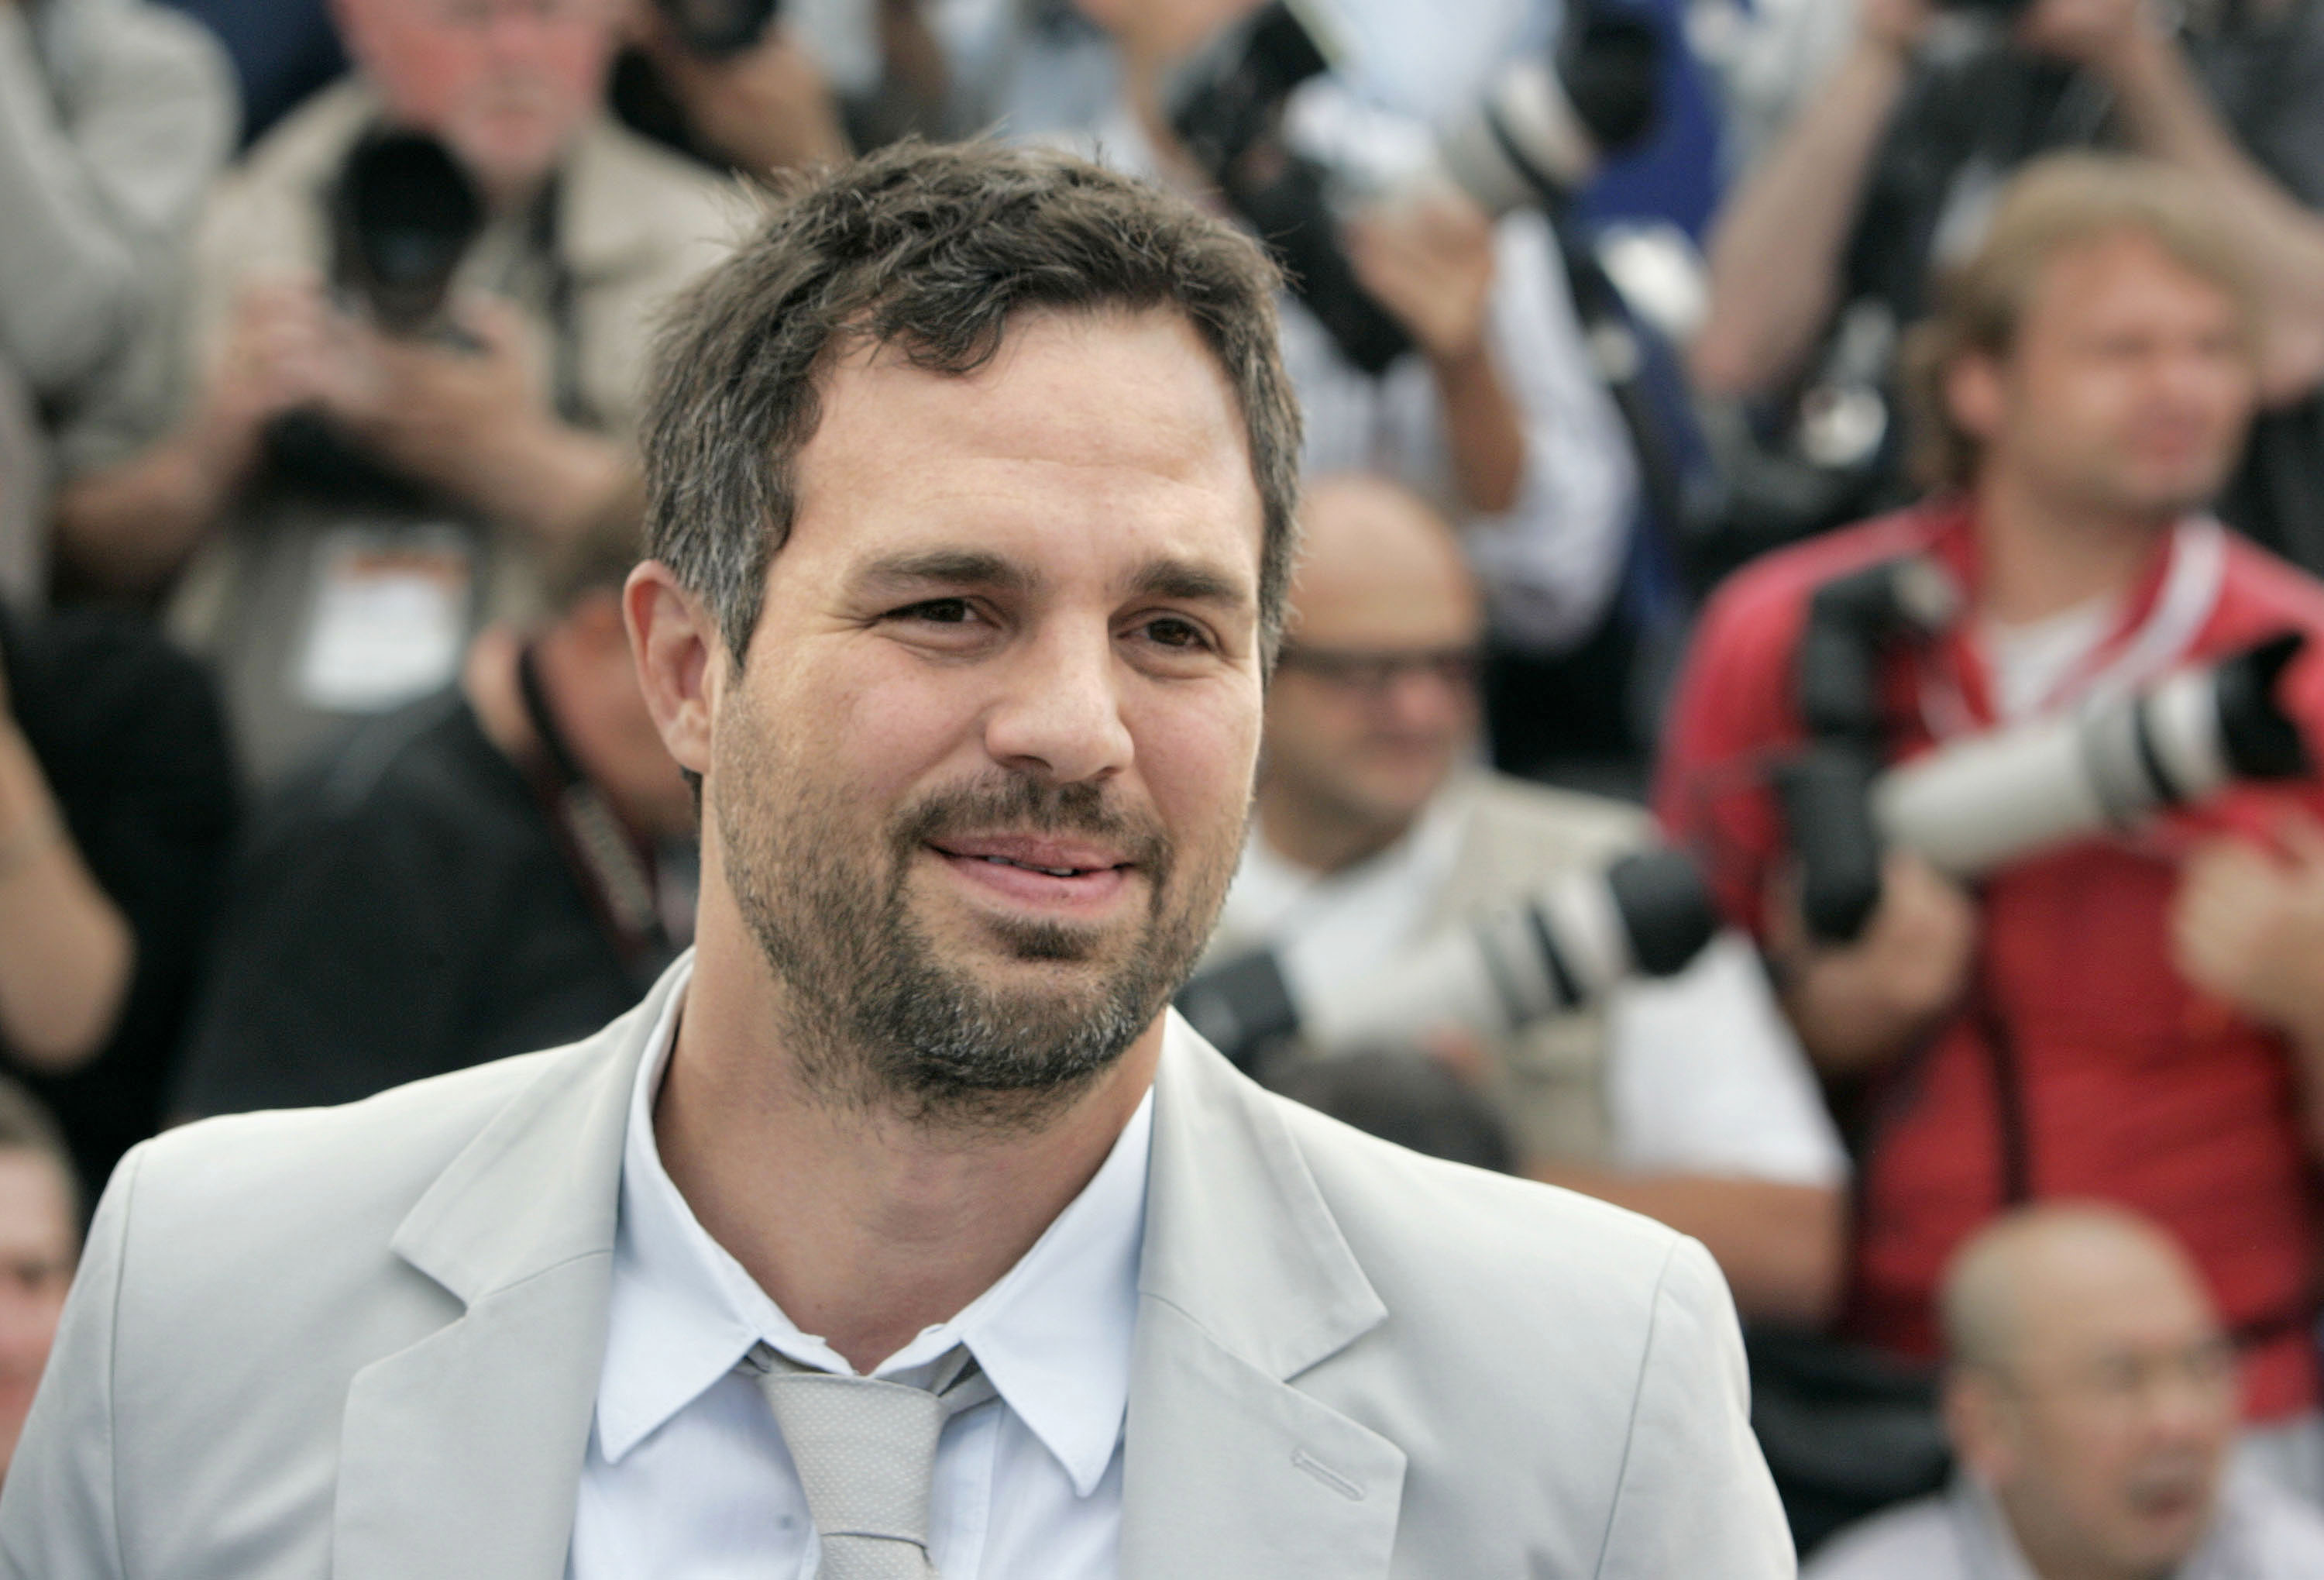 Mark Ruffalo played the Incredible Hulk in The Avengers (Picture: AP)